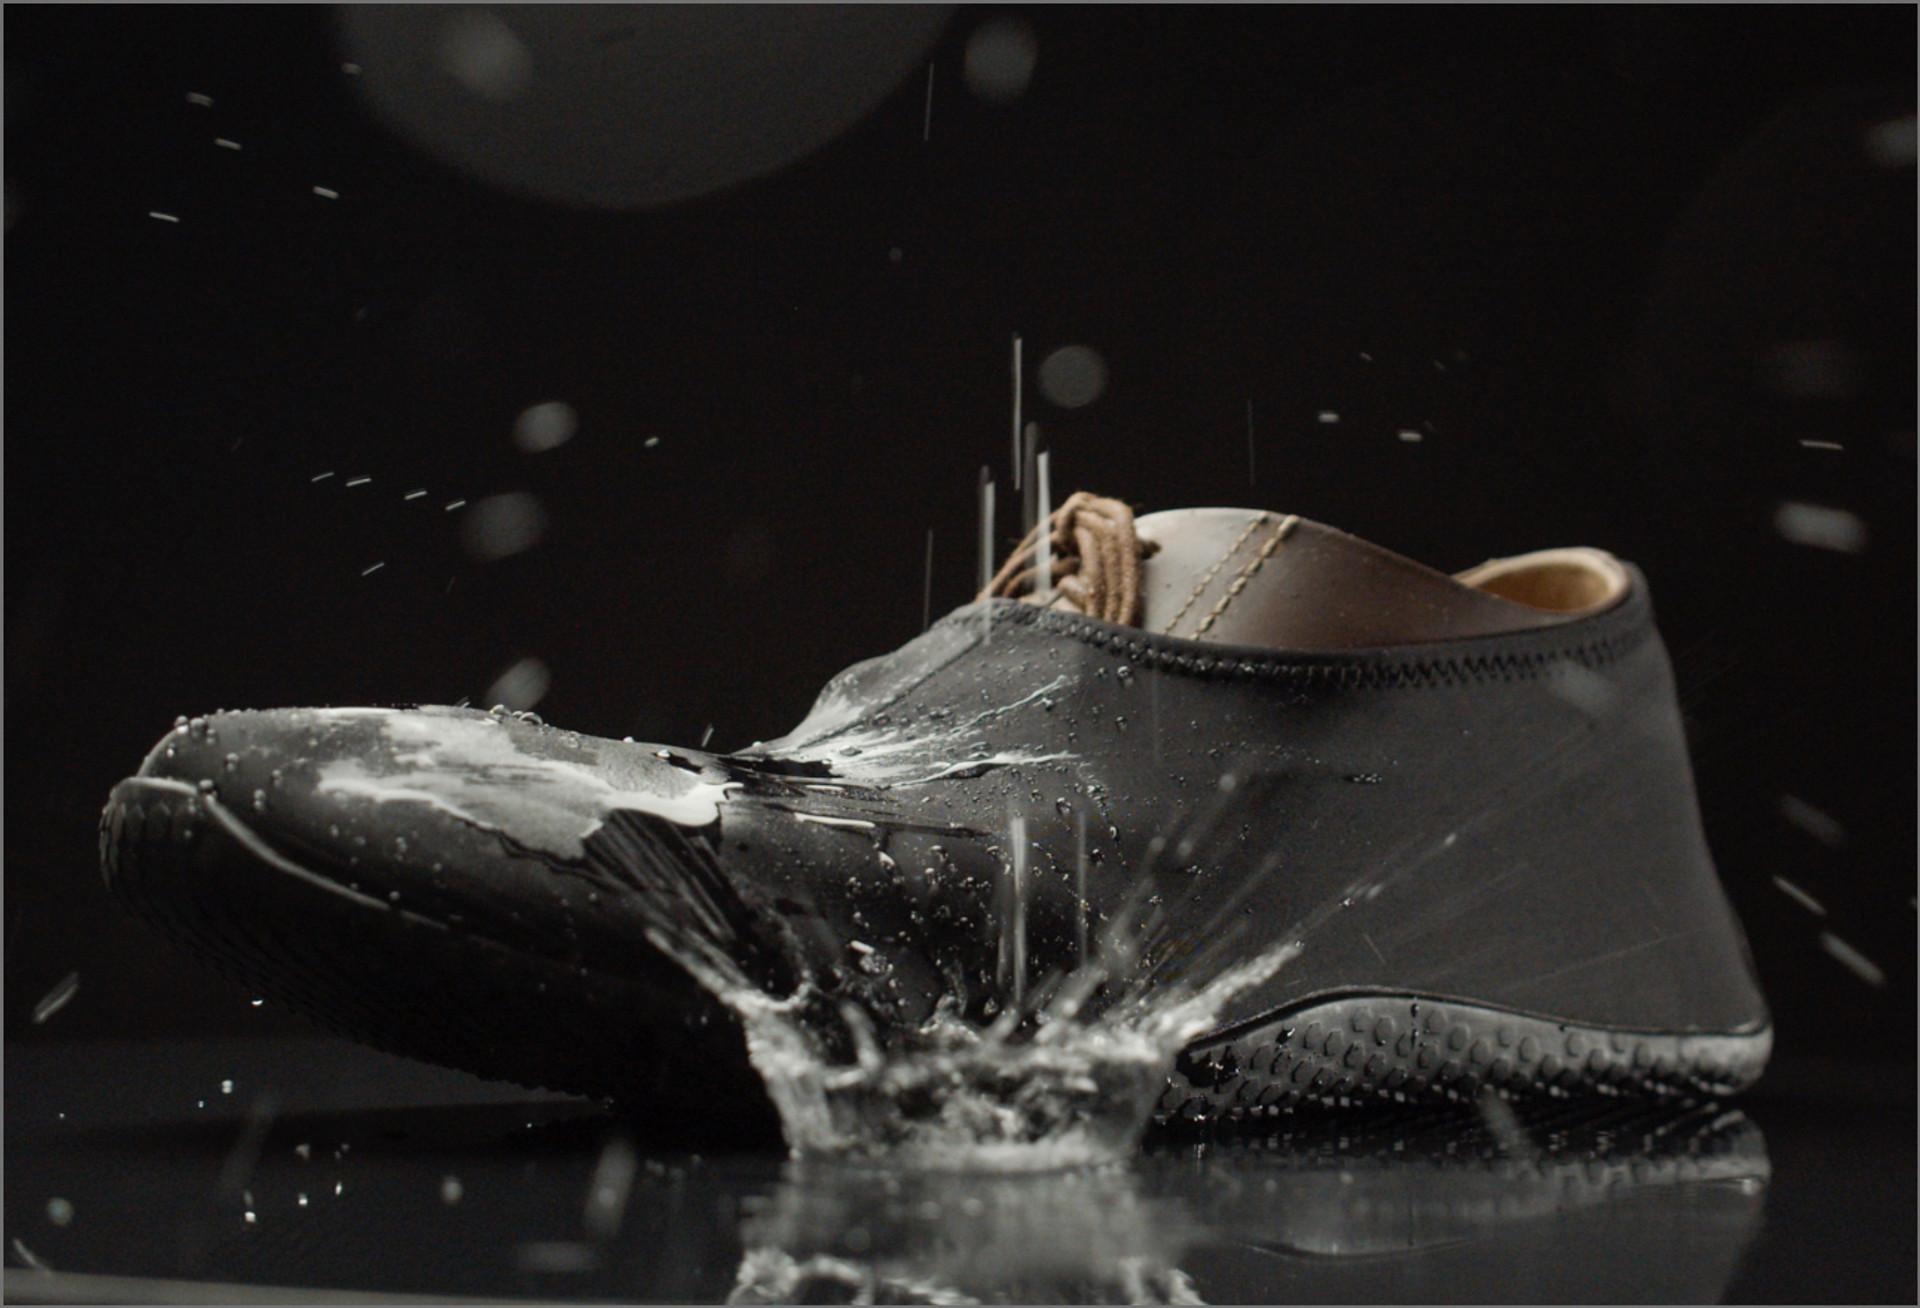 Designing Waterproof Shoe Covers: It's Time for Rubber to Go